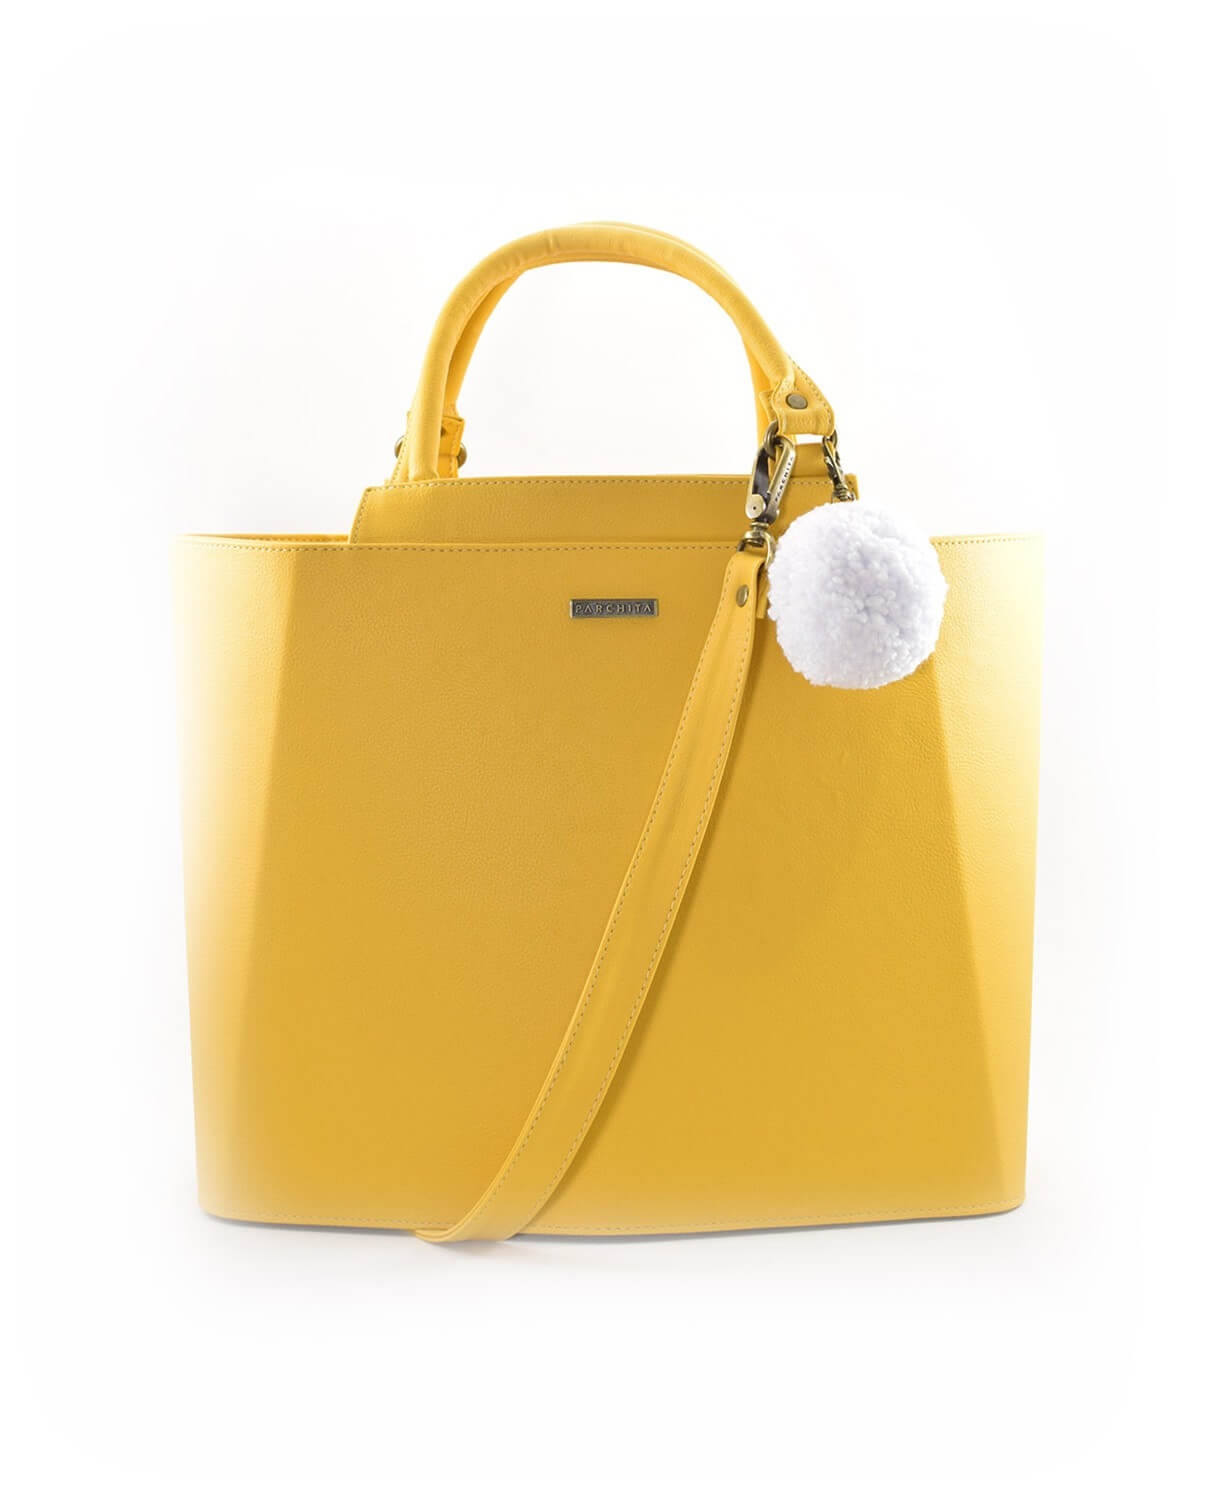 Cartera Piramidal Amarillo